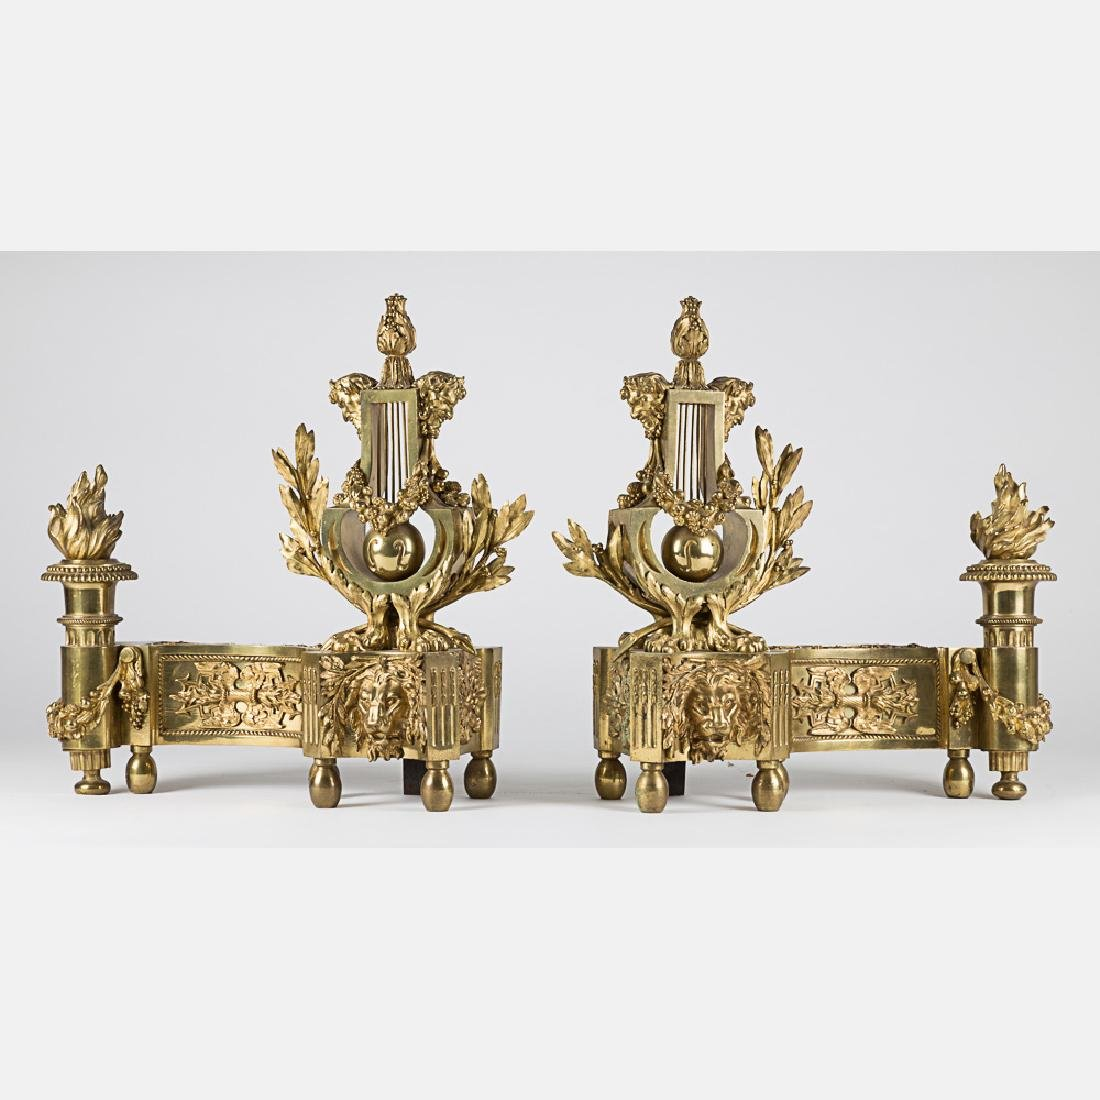 A Pair of Louis XV Style Bronze Dore Chenets, 19th/20th